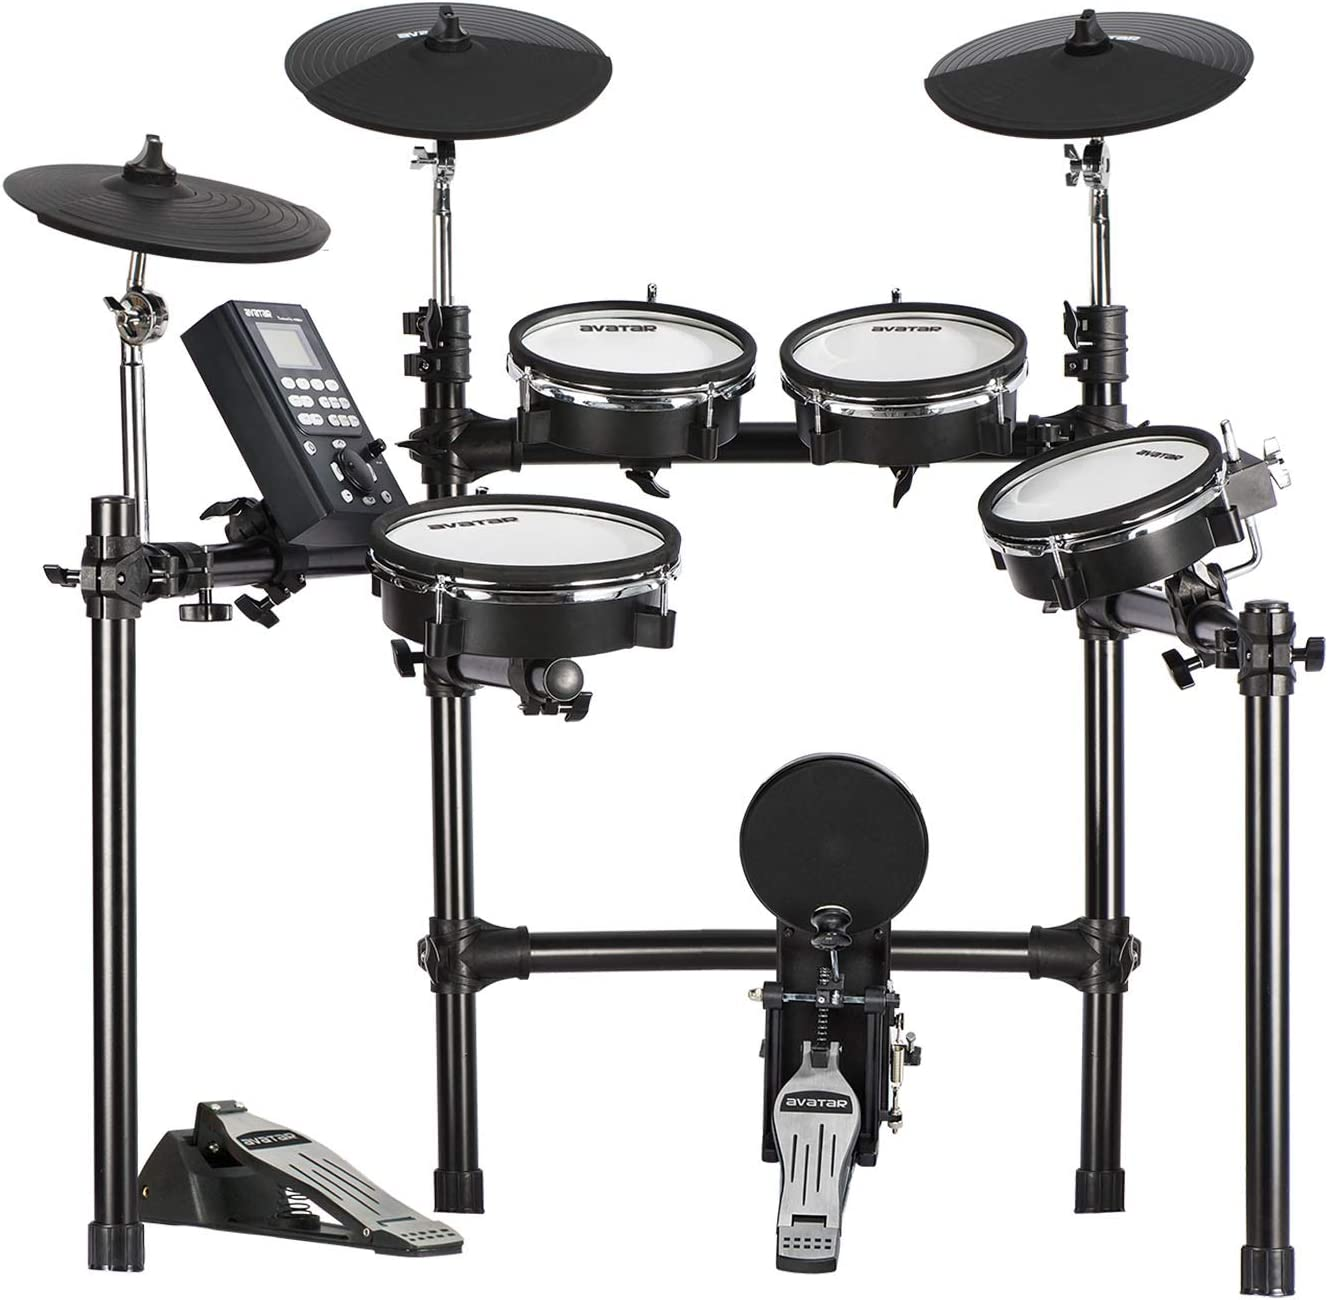 HXW SD201-C Electric Drum Set With Mesh Heads 8 Piece Electronic Drum Kit, All Dual-zone Pads and Cymbals With Choke, 346 Sounds, 50 Kits, Solid Racks